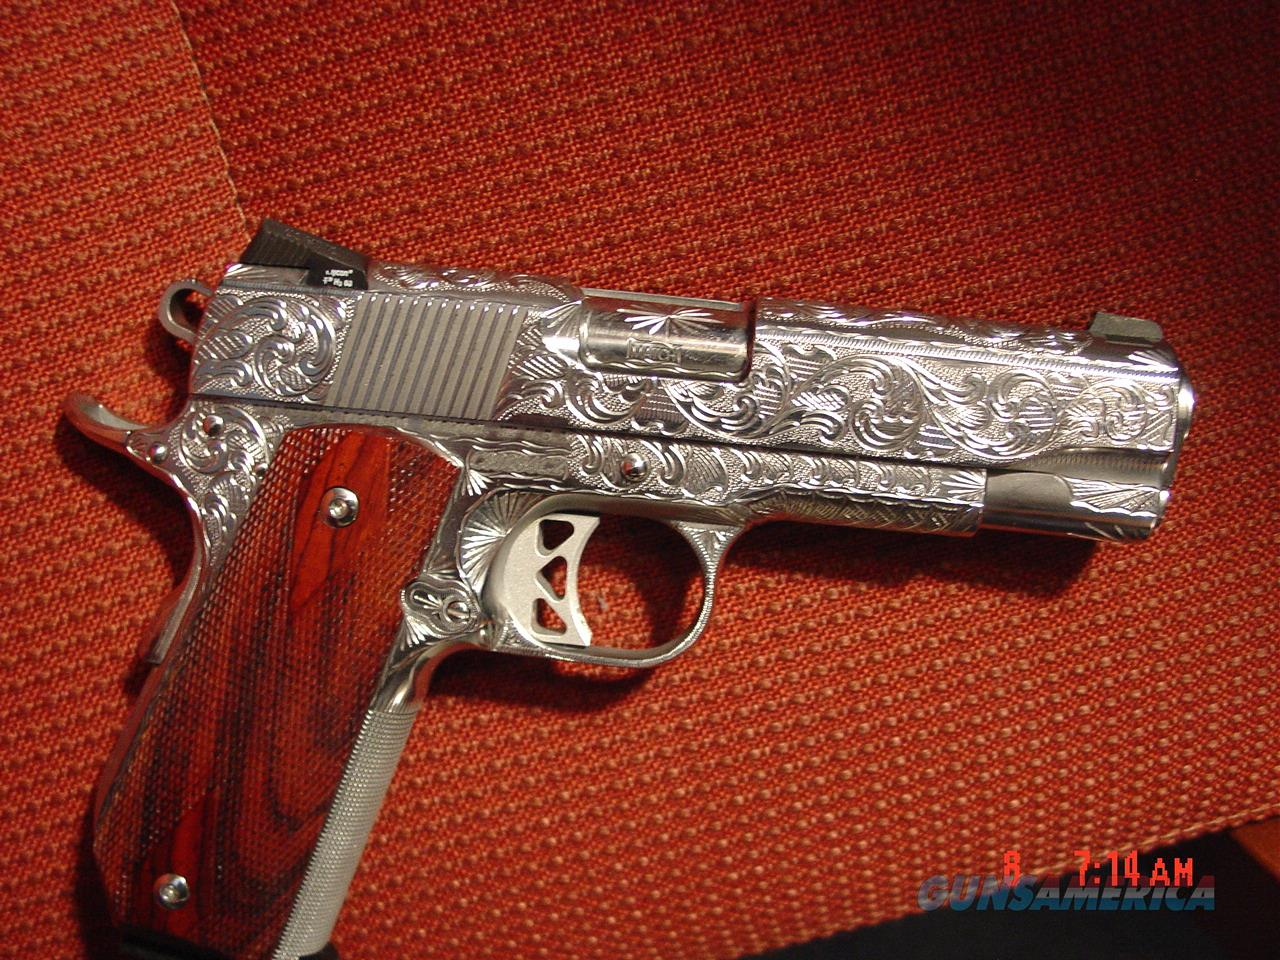 Dan Wesson Bobtail Commander Classic 1911,45acp,fully polished & engraved by Flannery Engraving,4' barrel,certificate,wood grips,1 of a kind work of art !!  Guns > Pistols > Dan Wesson Pistols/Revolvers > 1911 Style